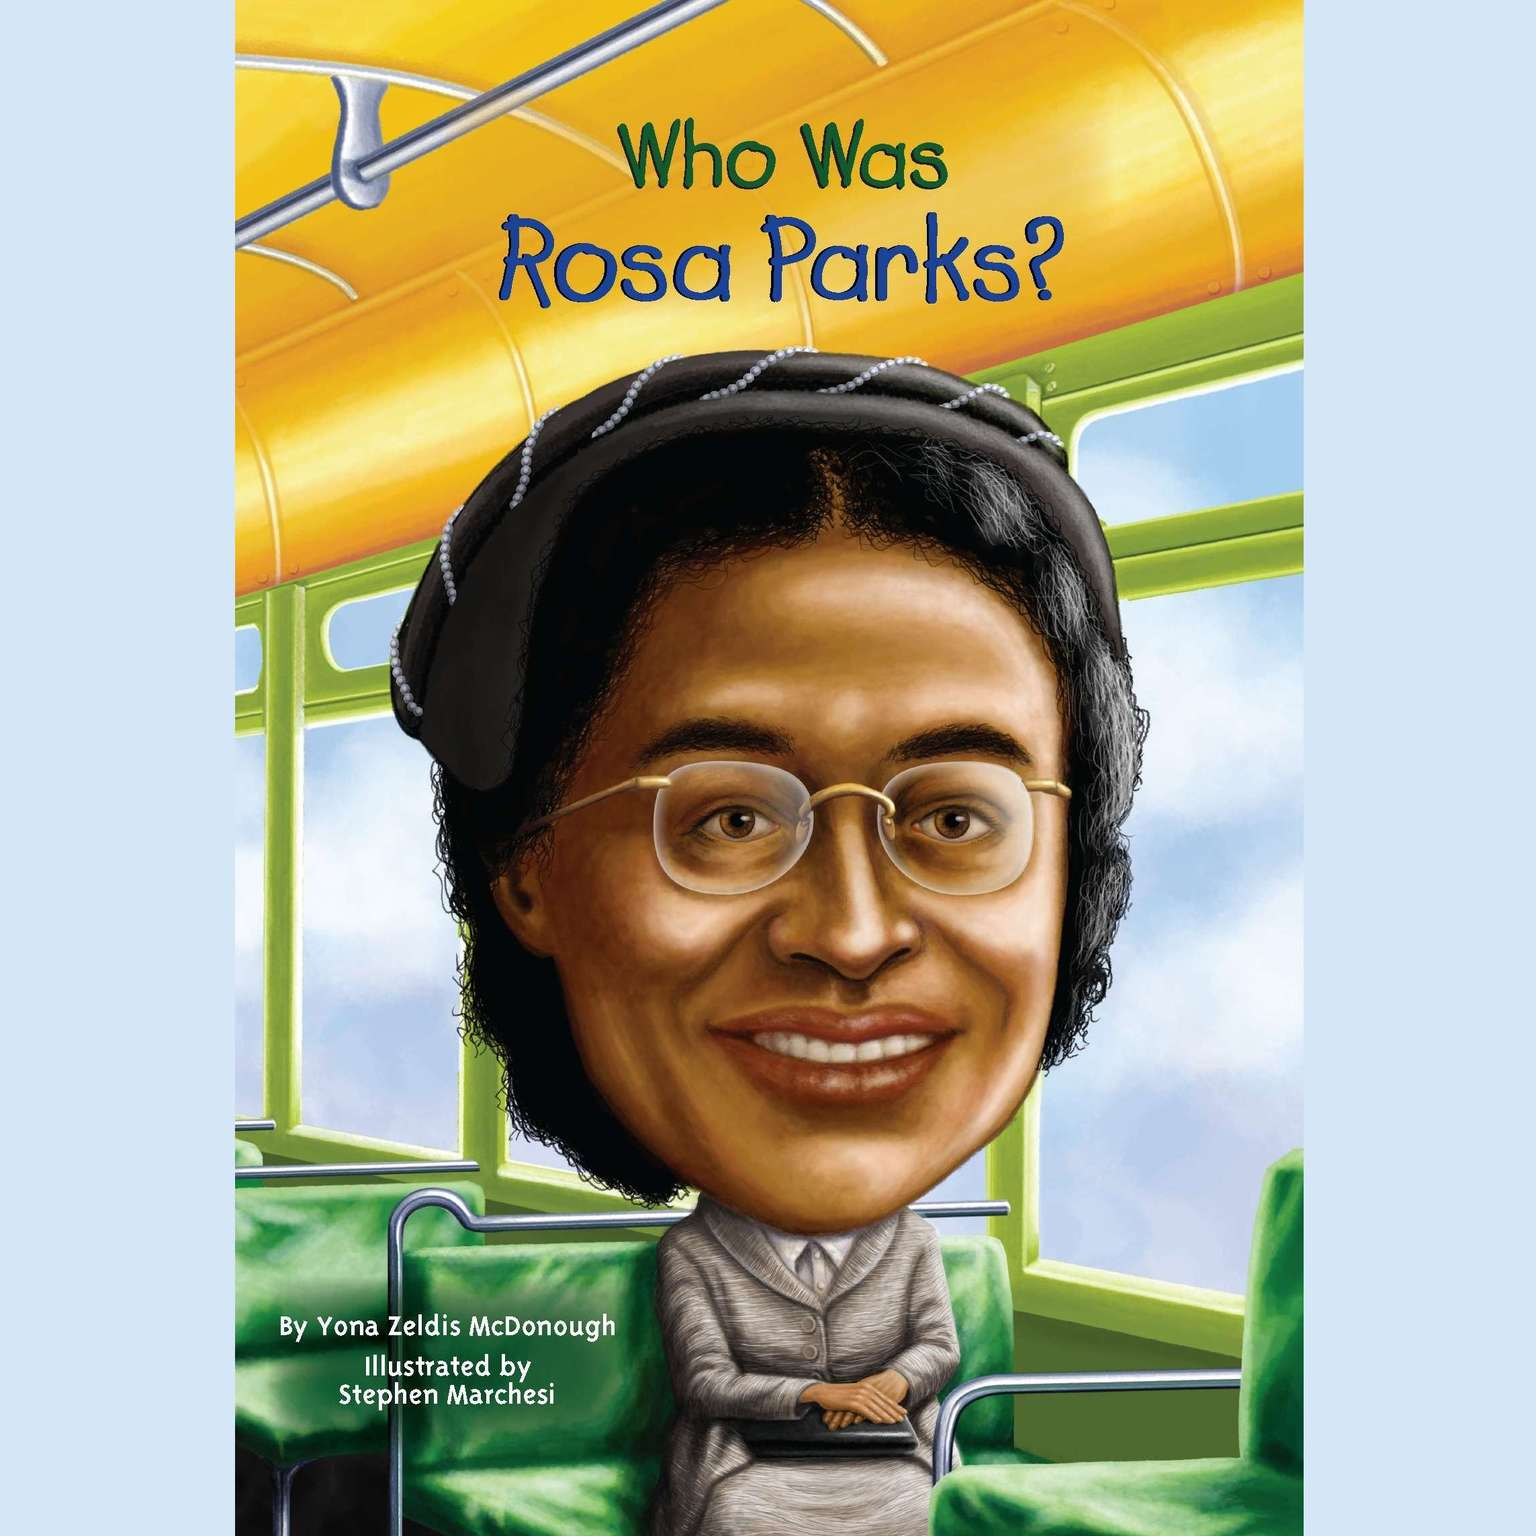 hear who was rosa parks audiobook by yona zeldis mcdonough for extended audio sample who was rosa parks audiobook by yona zeldis mcdonough